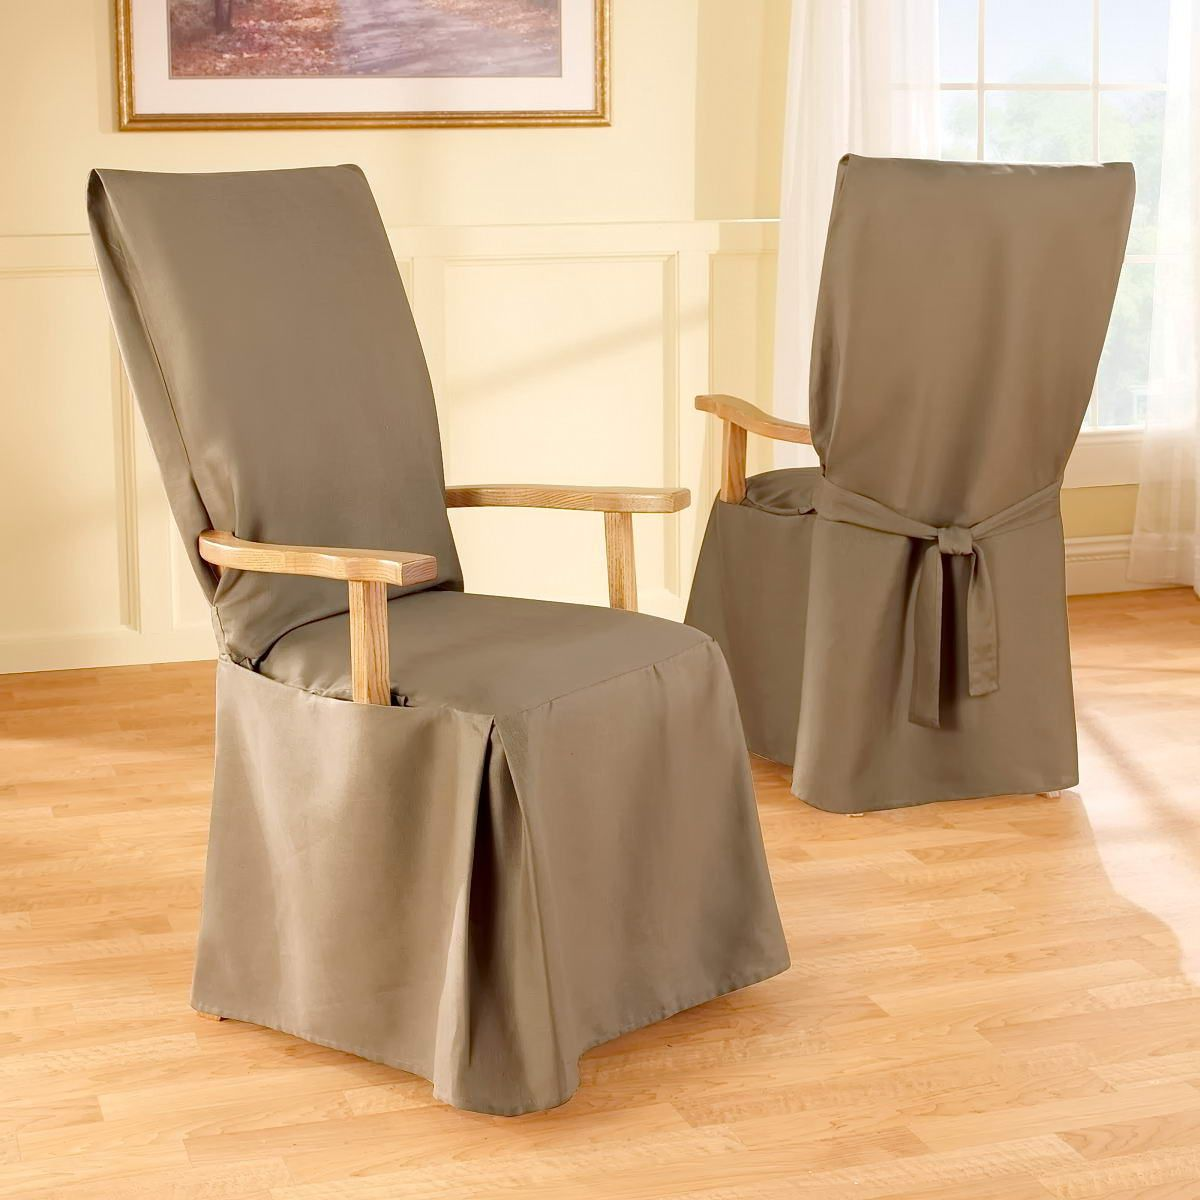 Slipcovers For Dining Room Chairs With Arms Slipcovers For